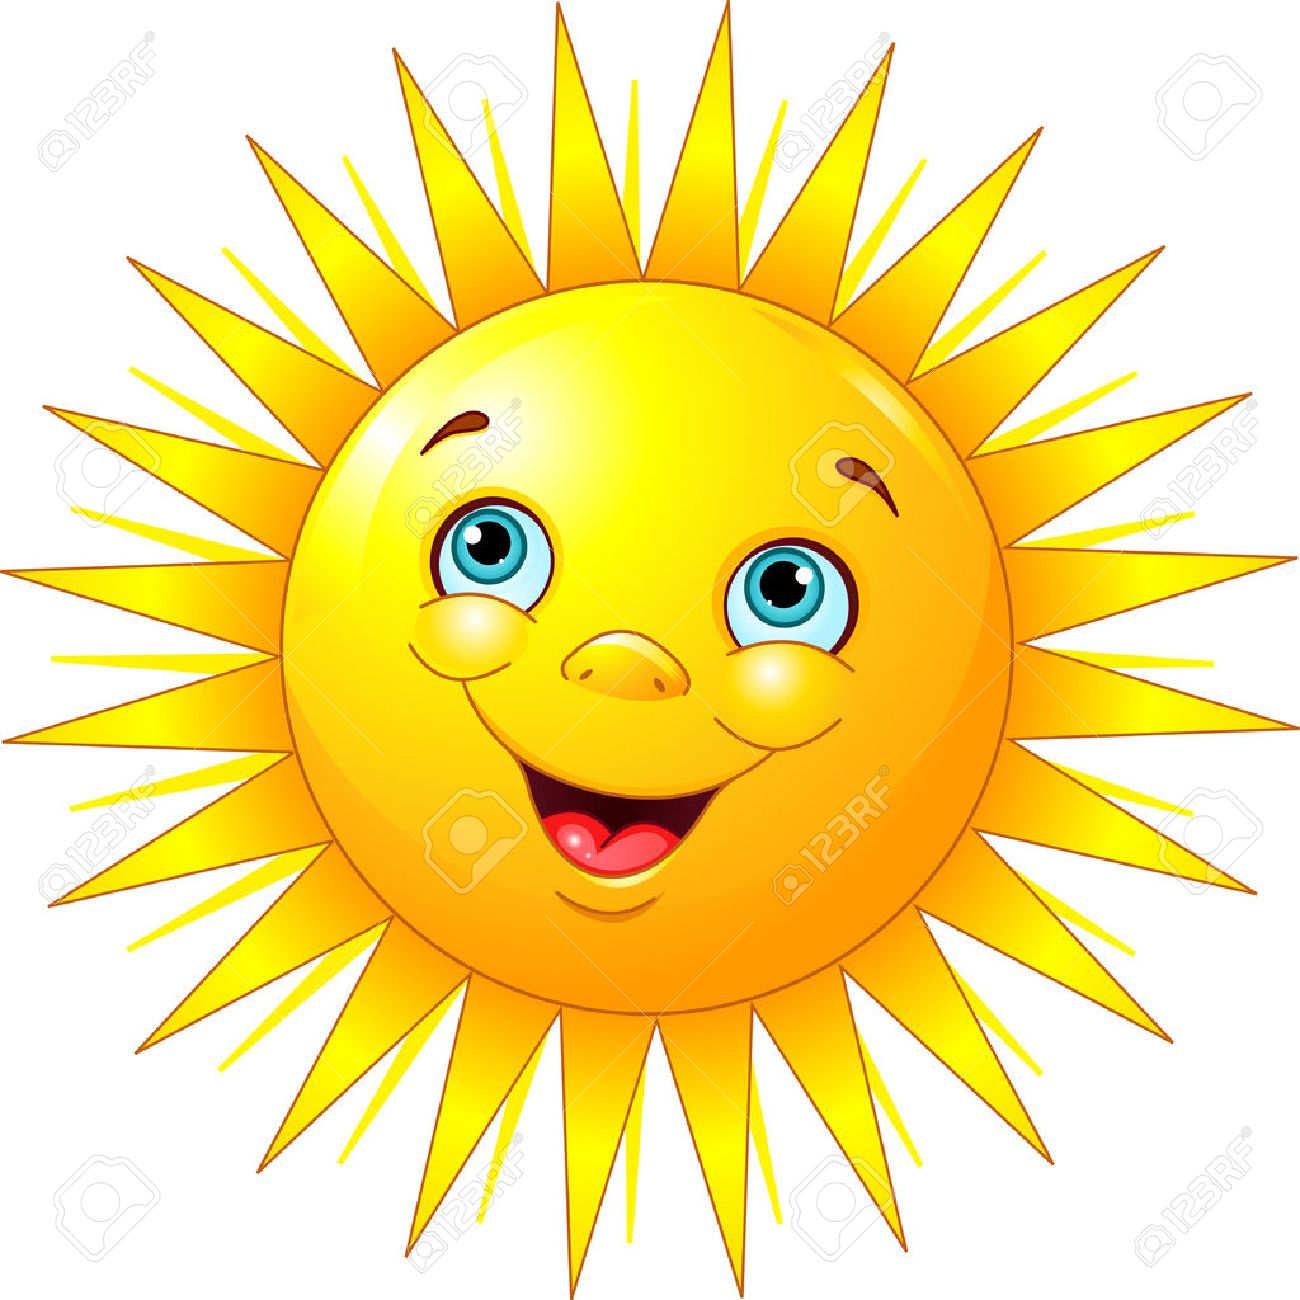 illustration of smiling sun character royalty free cliparts vectors rh 123rf com smiling sun clipart smiling sun clipart free